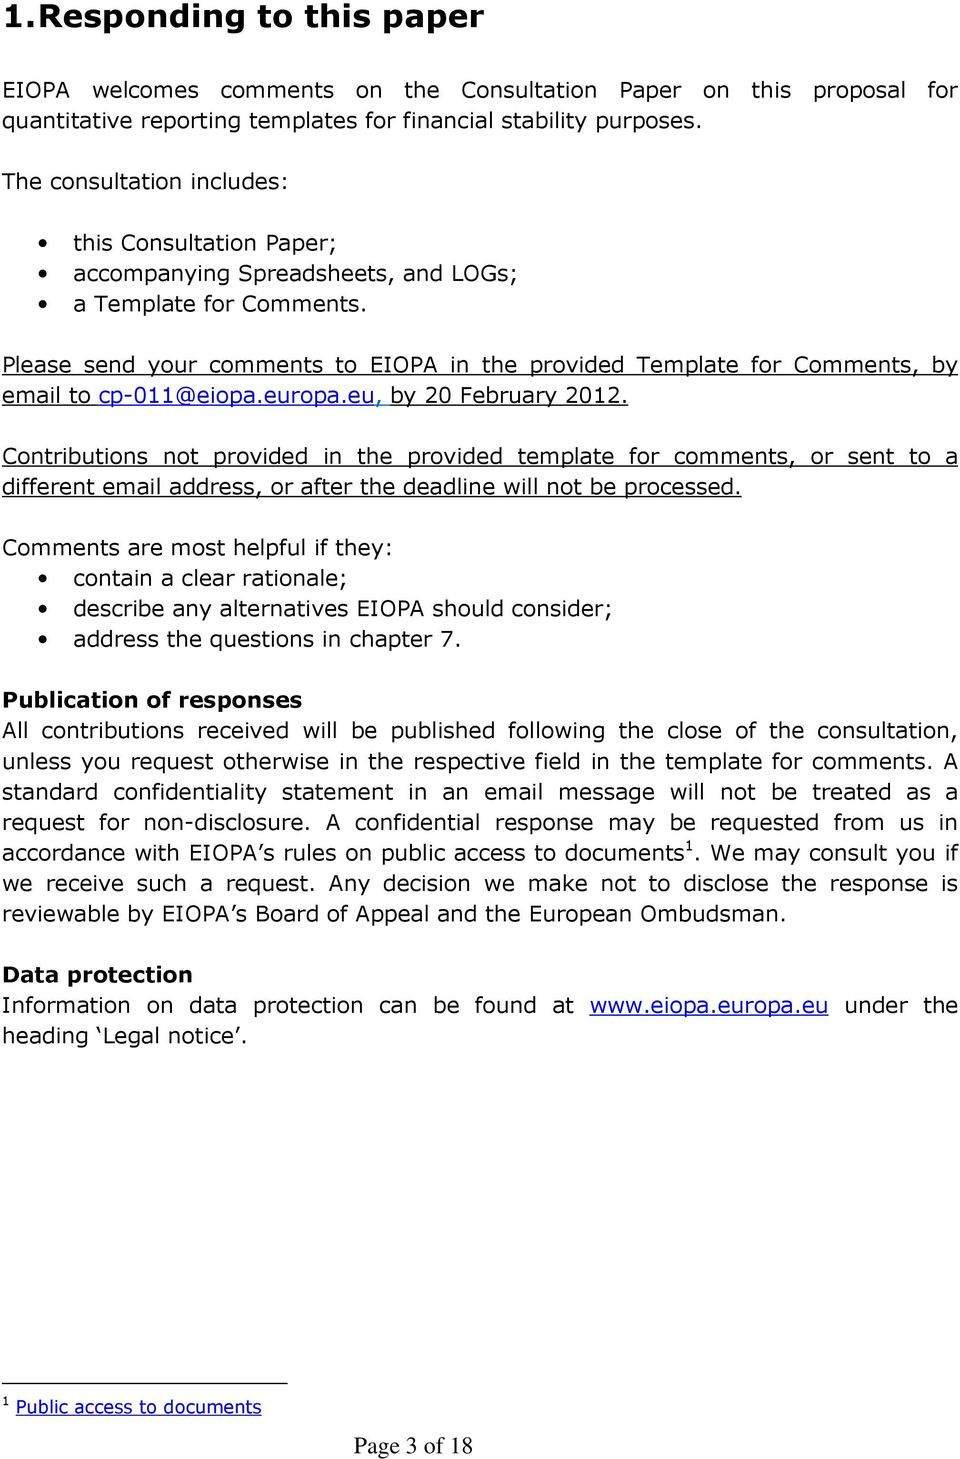 Please send your comments to EIOPA in the provided Template for Comments, by email to cp011@eiopa.europa.eu, by 20 February 2012.